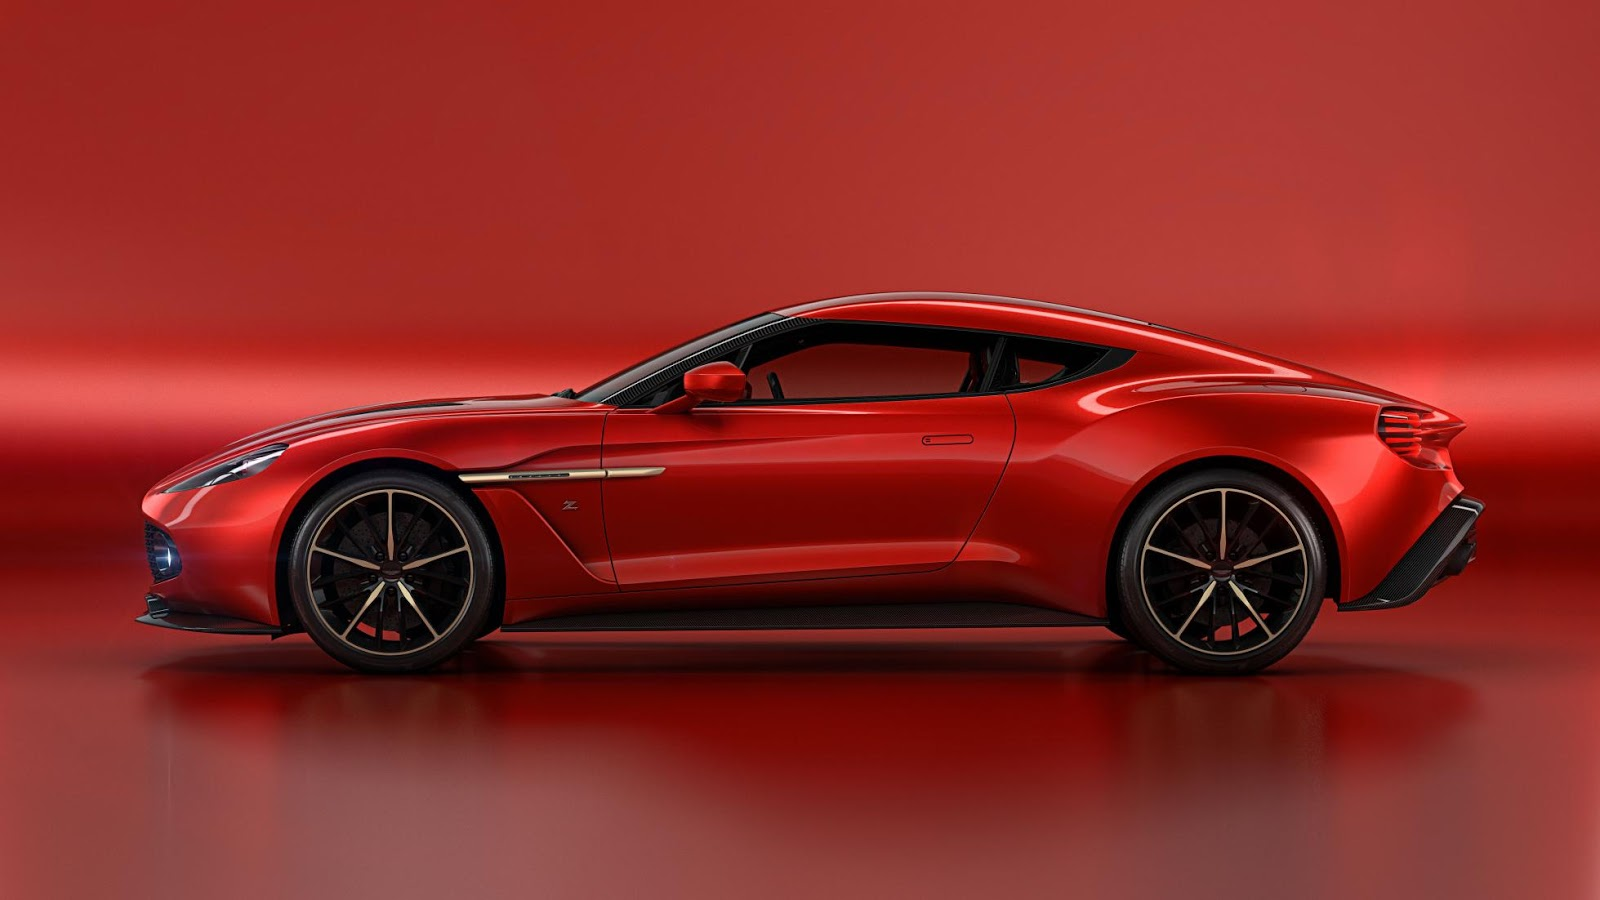 2016 aston martin vanquish zagato coupe trend car gallery. Black Bedroom Furniture Sets. Home Design Ideas